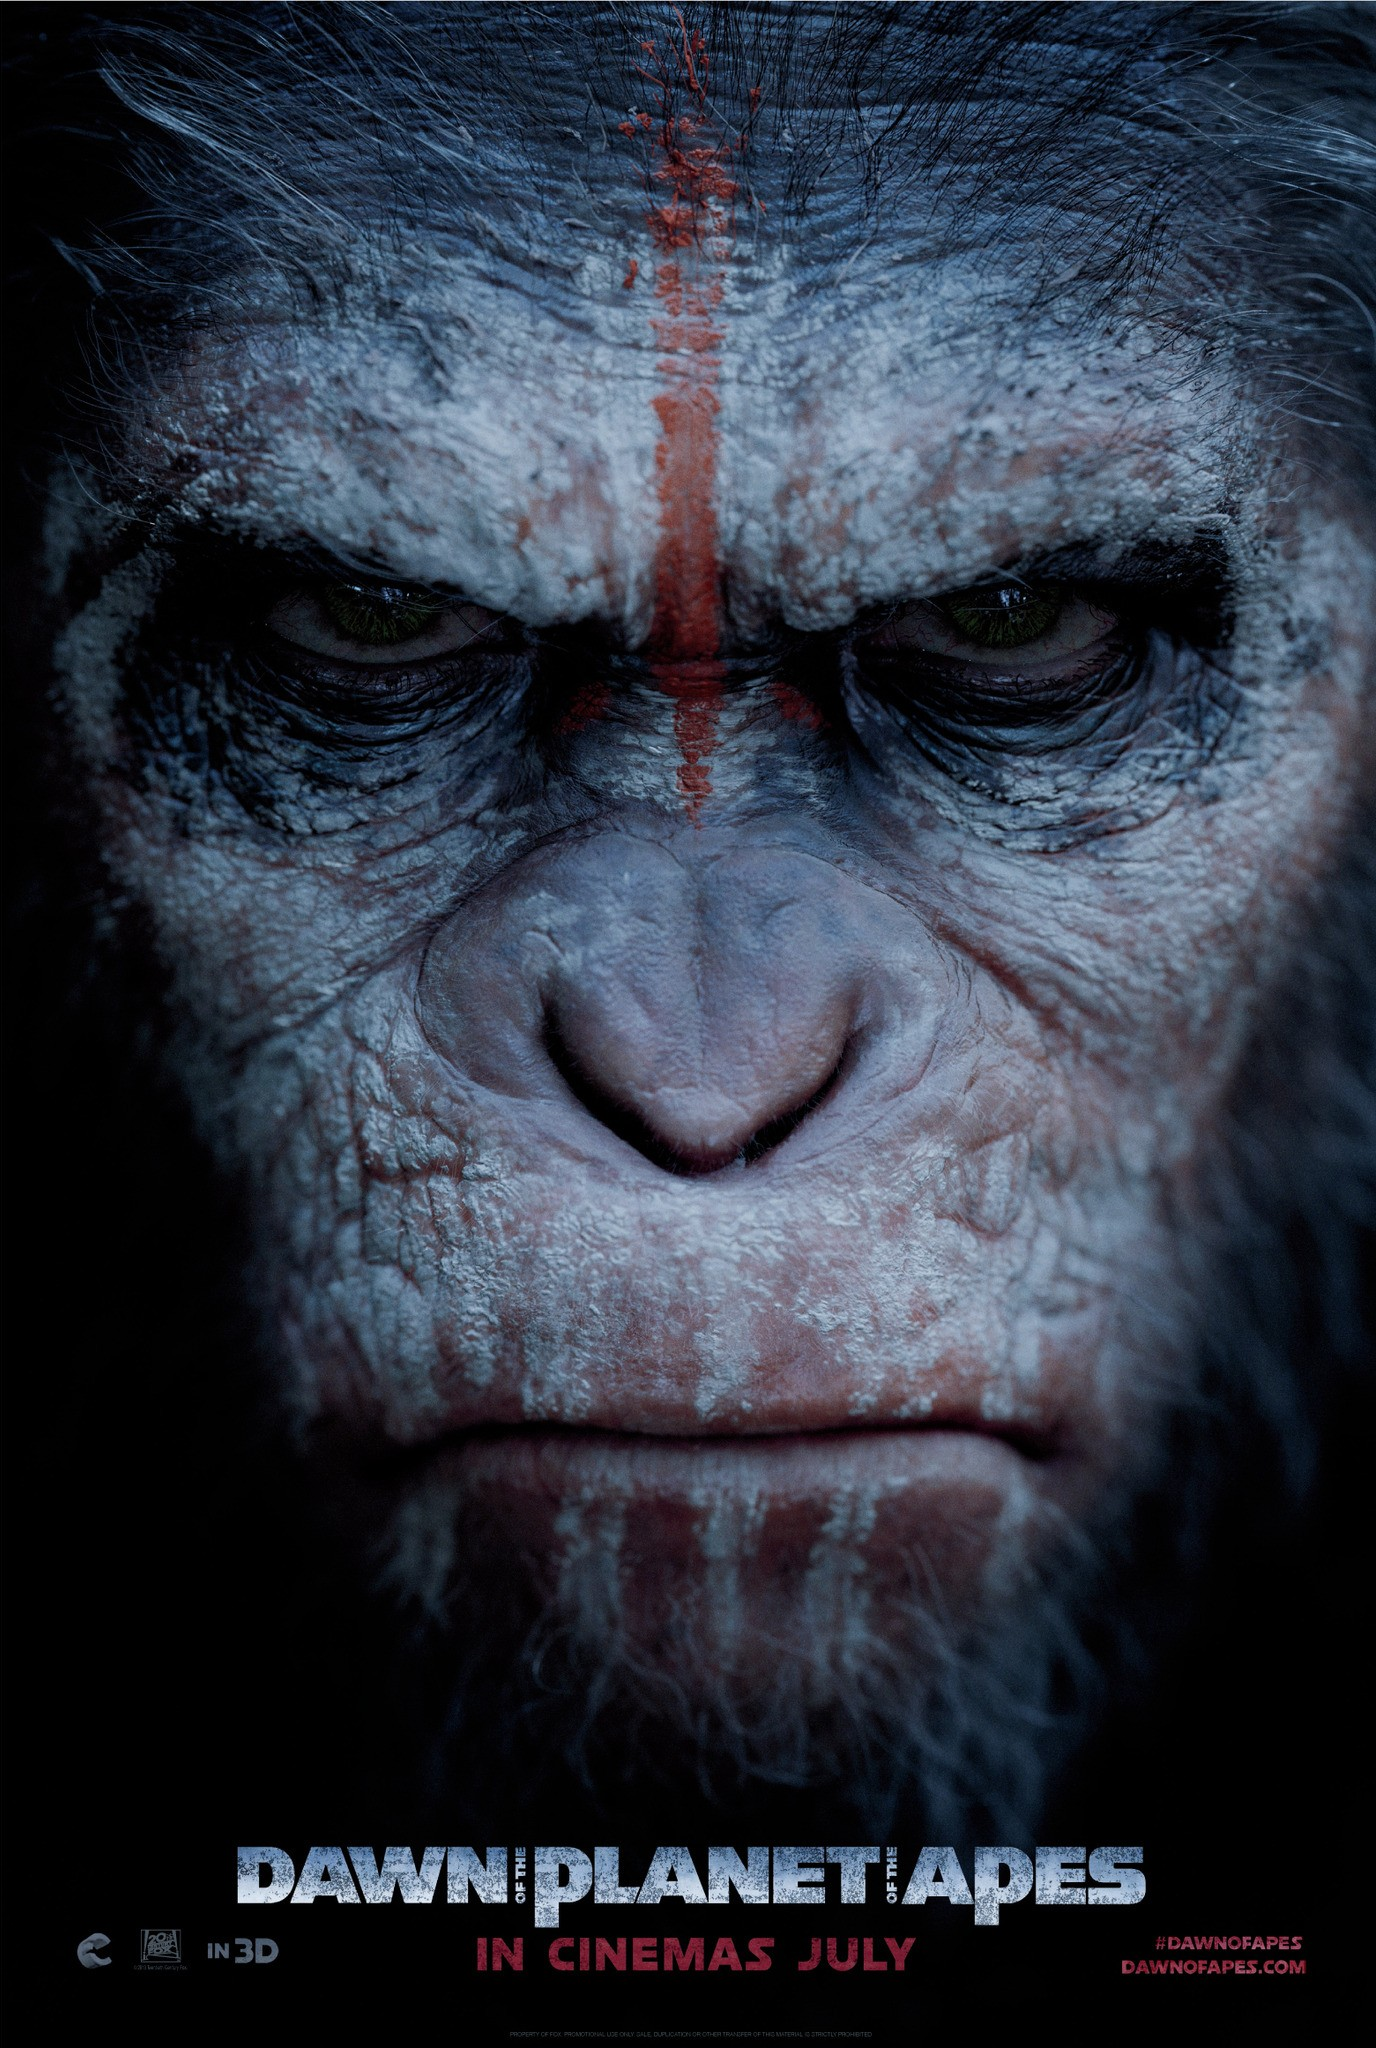 Dawn of the Planet of the Apes-Official Poster Banner PROMO POSTER XLG-13DEZEMBRO2013-04